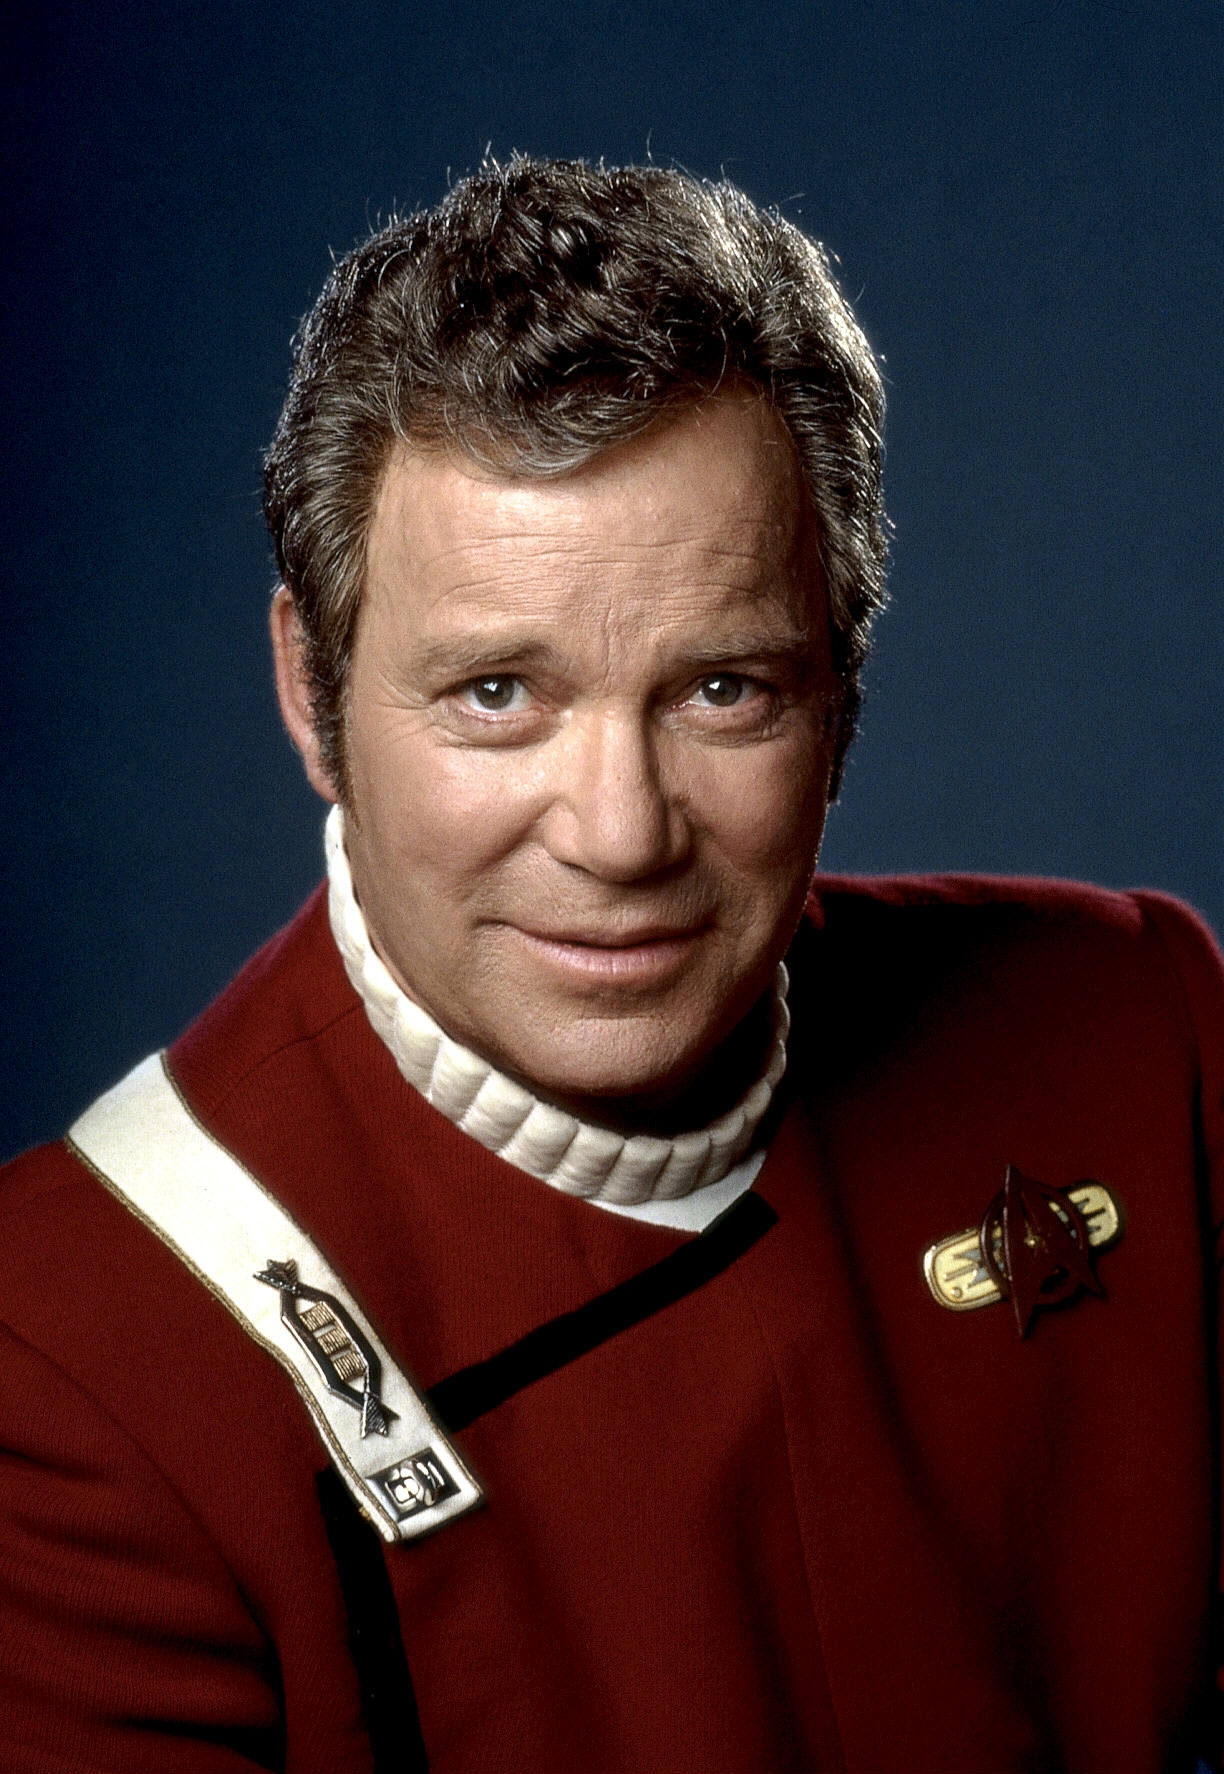 William Shatner without Toupee